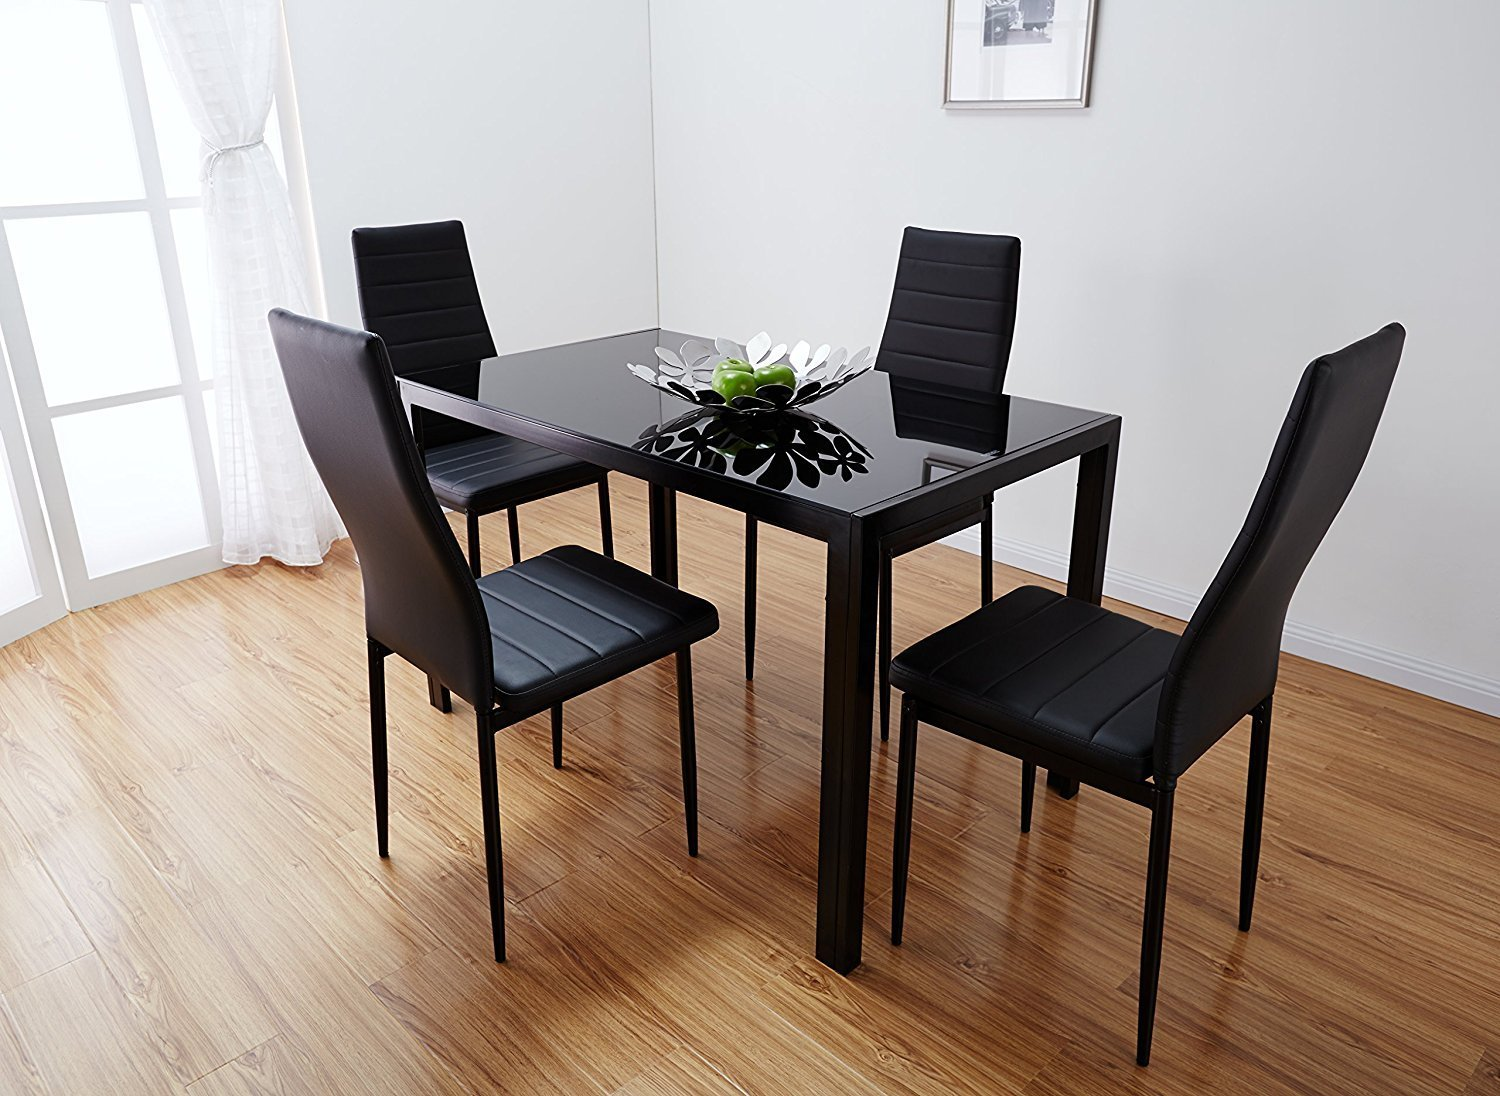 Get quotations · bonnlo modern 5 pieces dining table set glass top dining table and chair set for 4